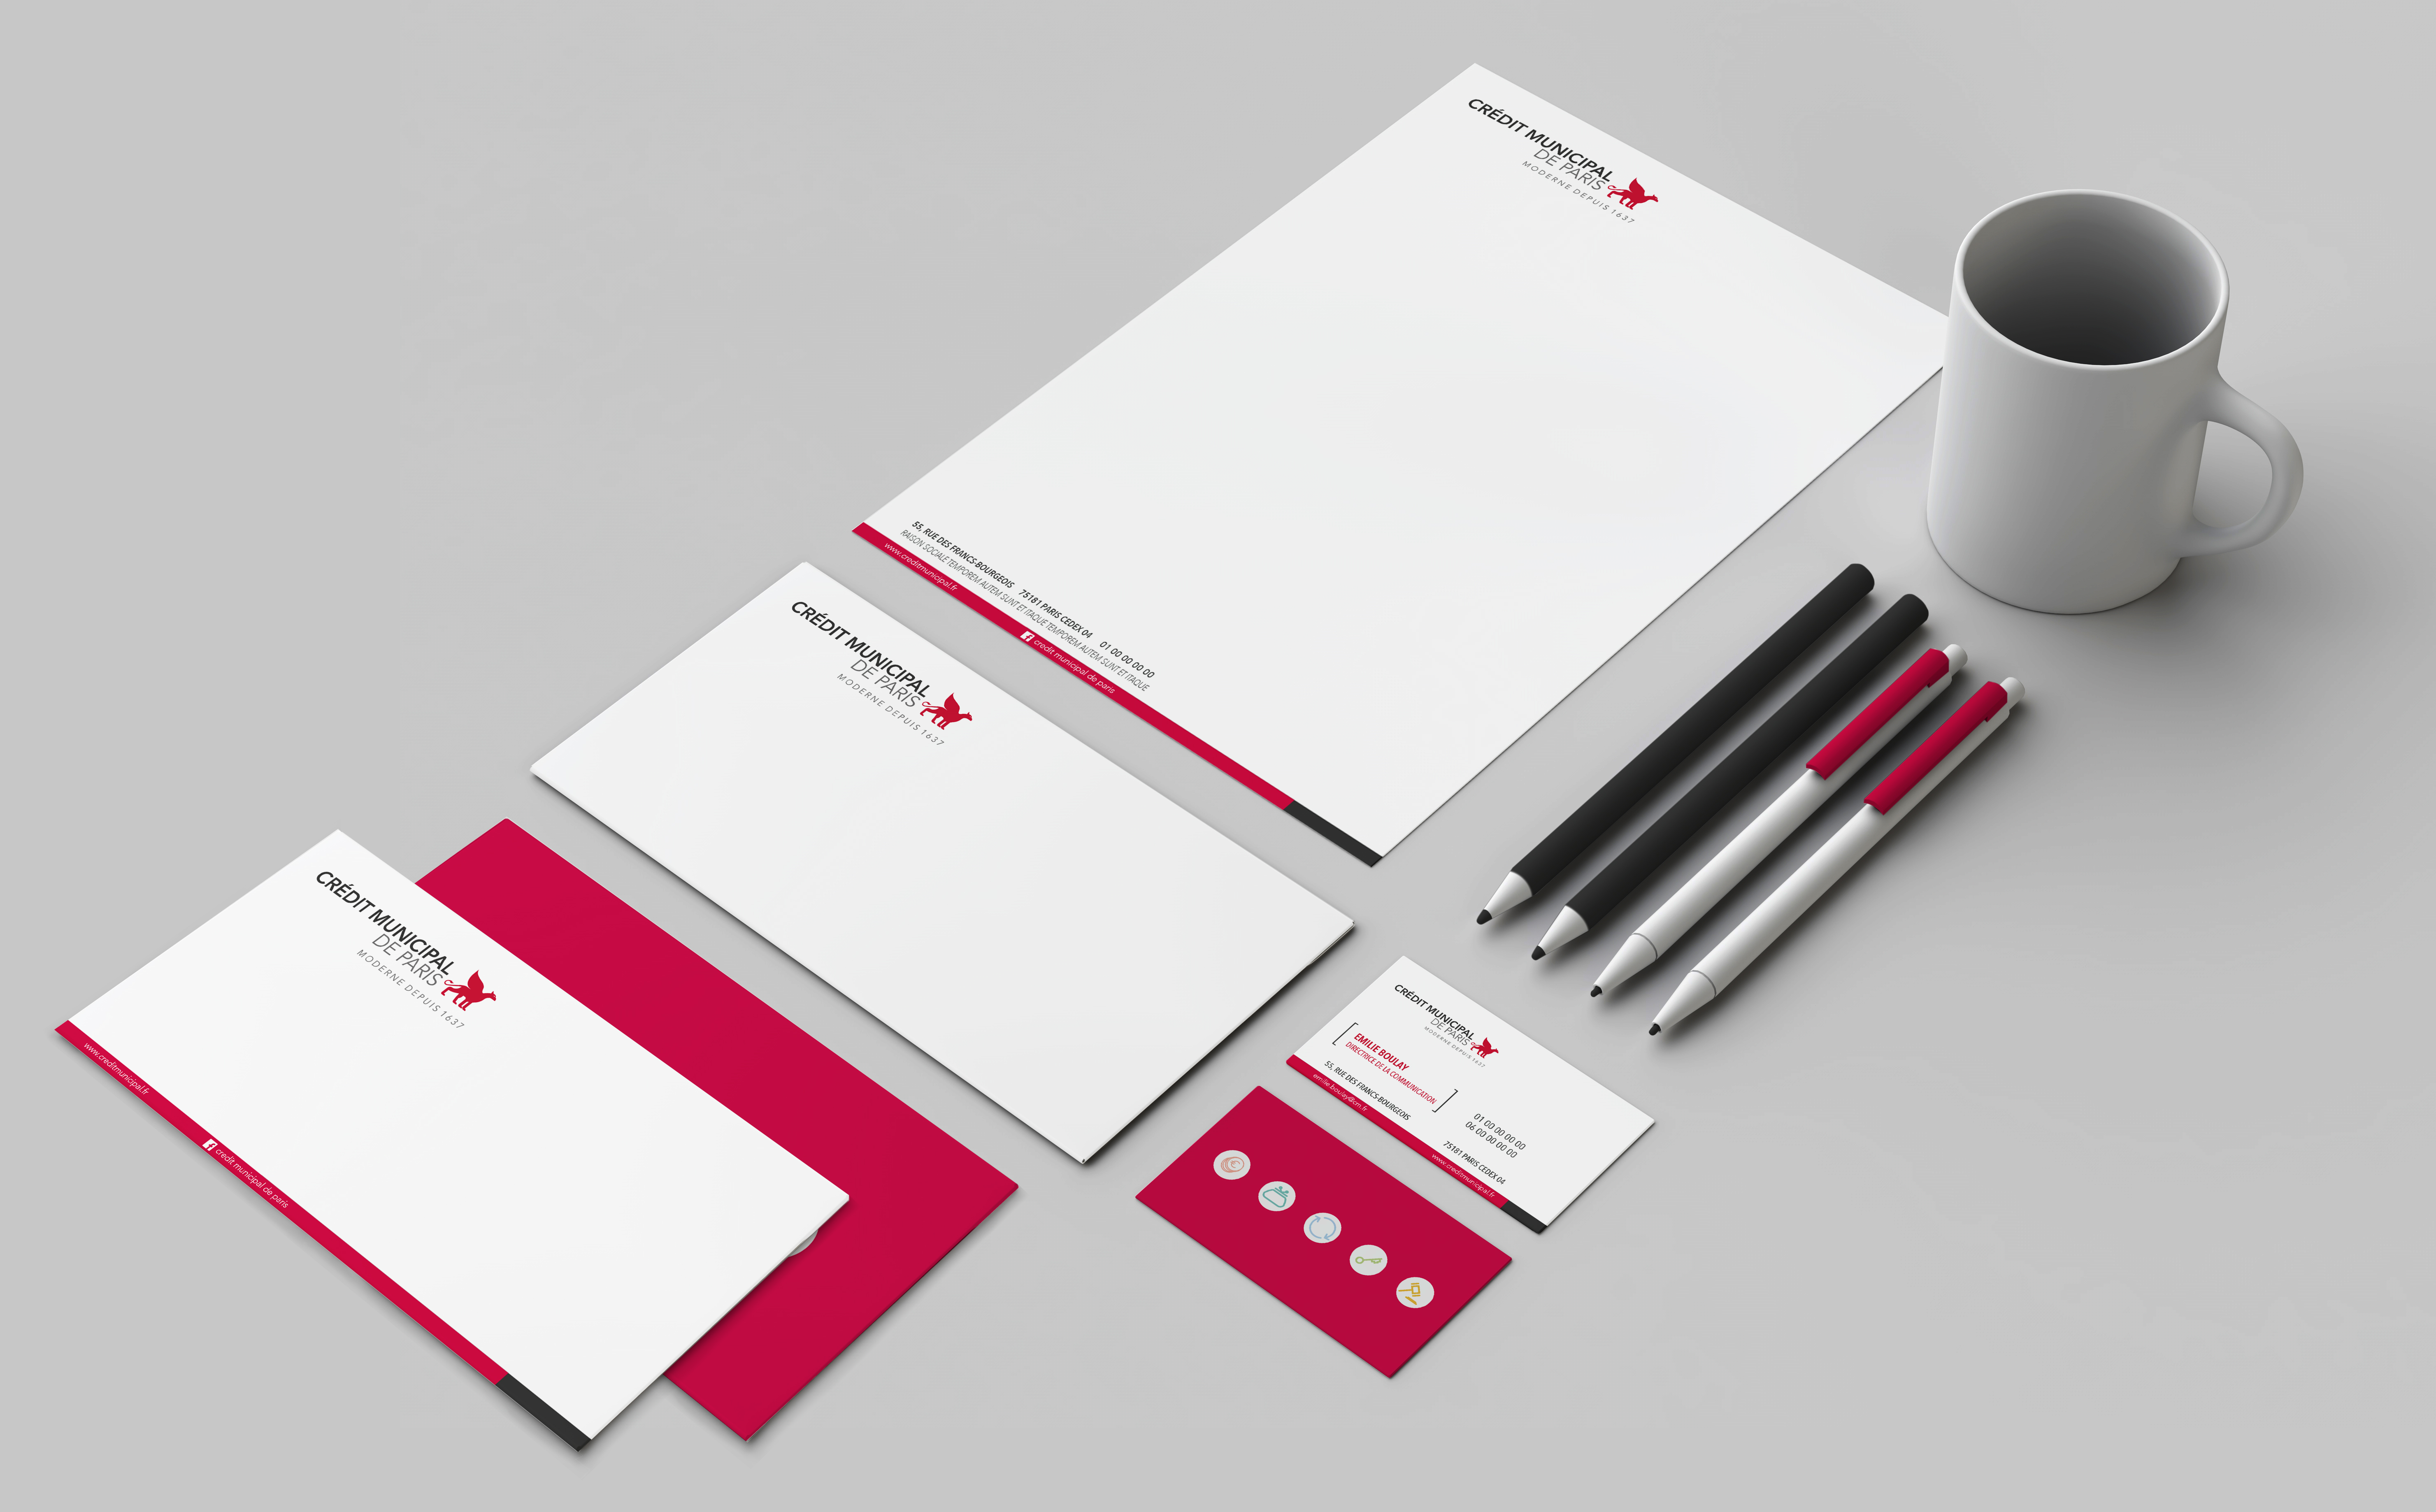 White stationery mock-up, template for branding identity on gray background. For graphic designers presentations and portfolios. 3D rendering.; Shutterstock ID 457764757